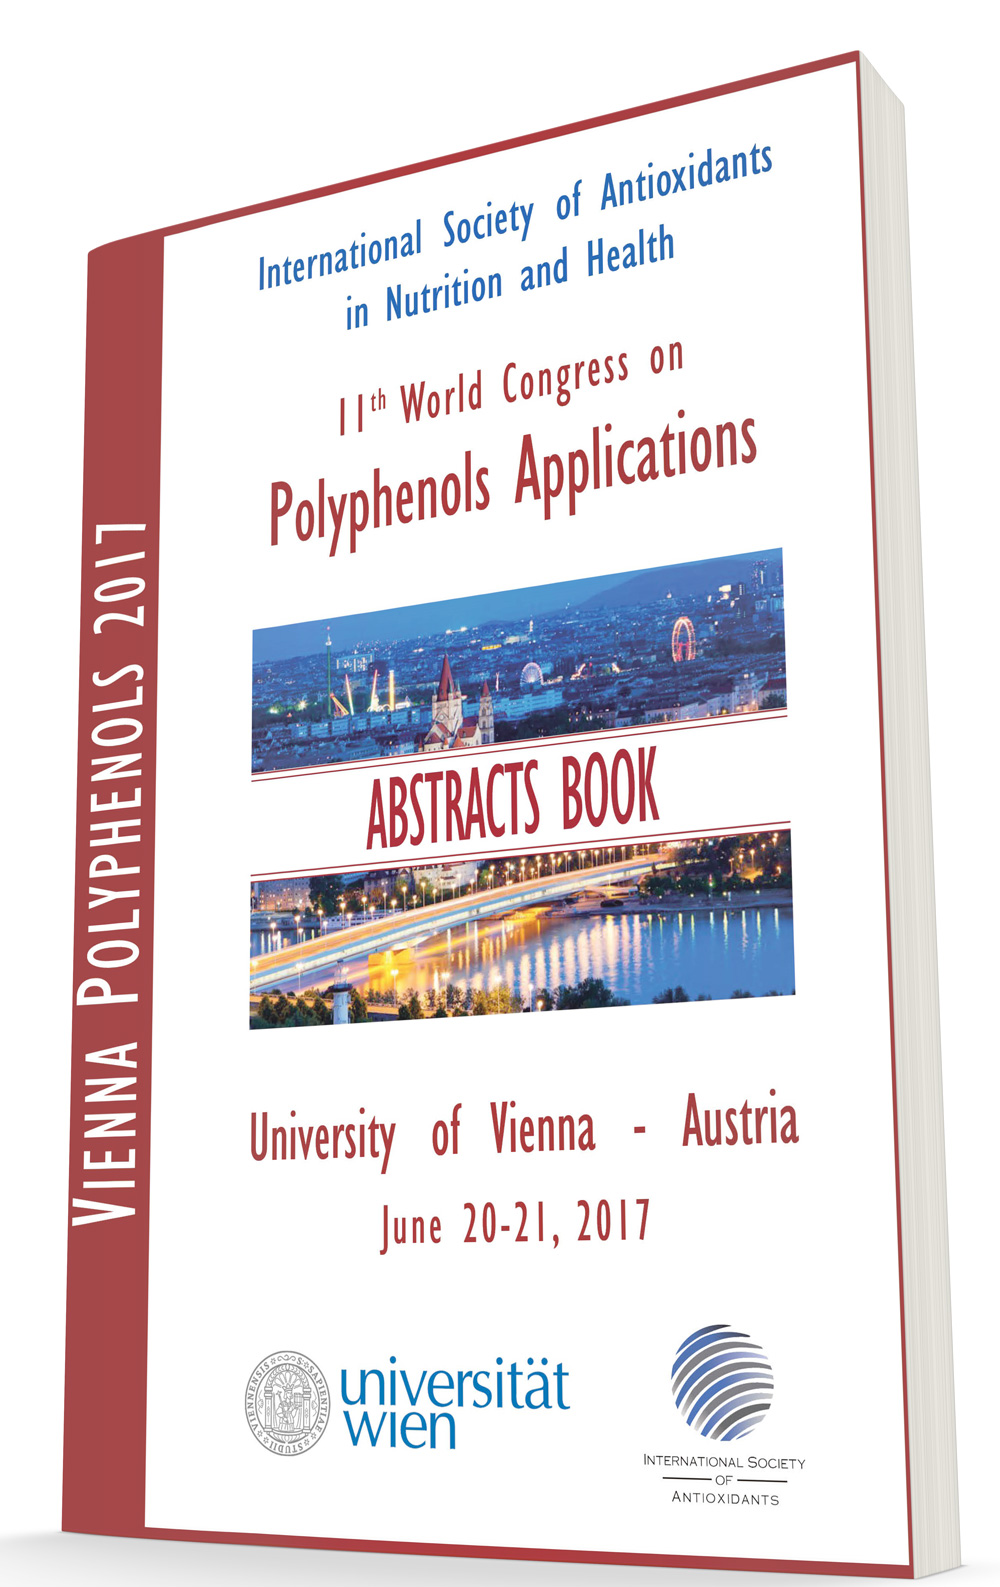 Vienna Polyphenols 2017 Abstracts Book